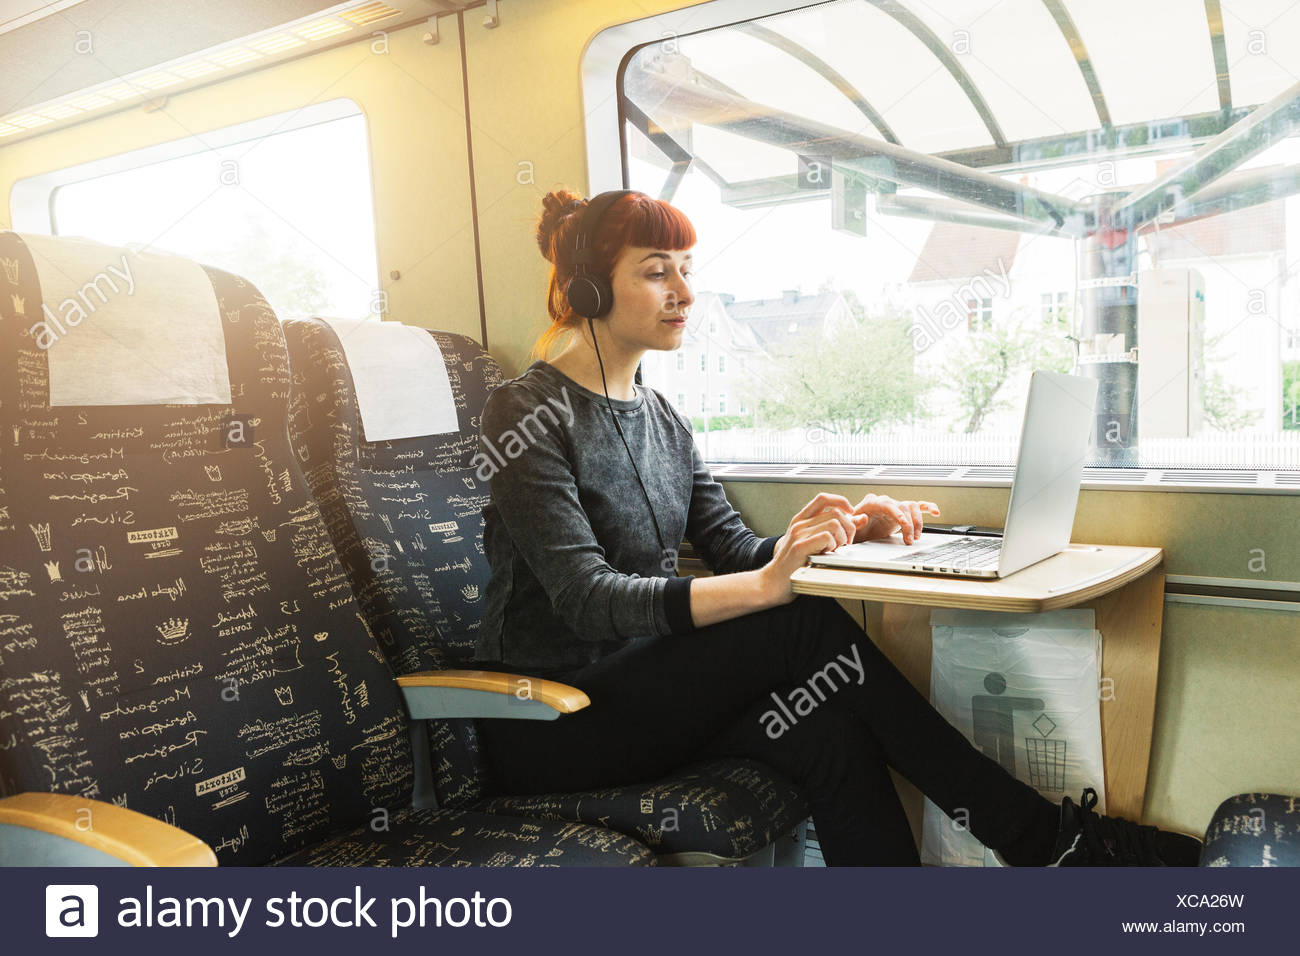 Woman using laptop on train Photo Stock